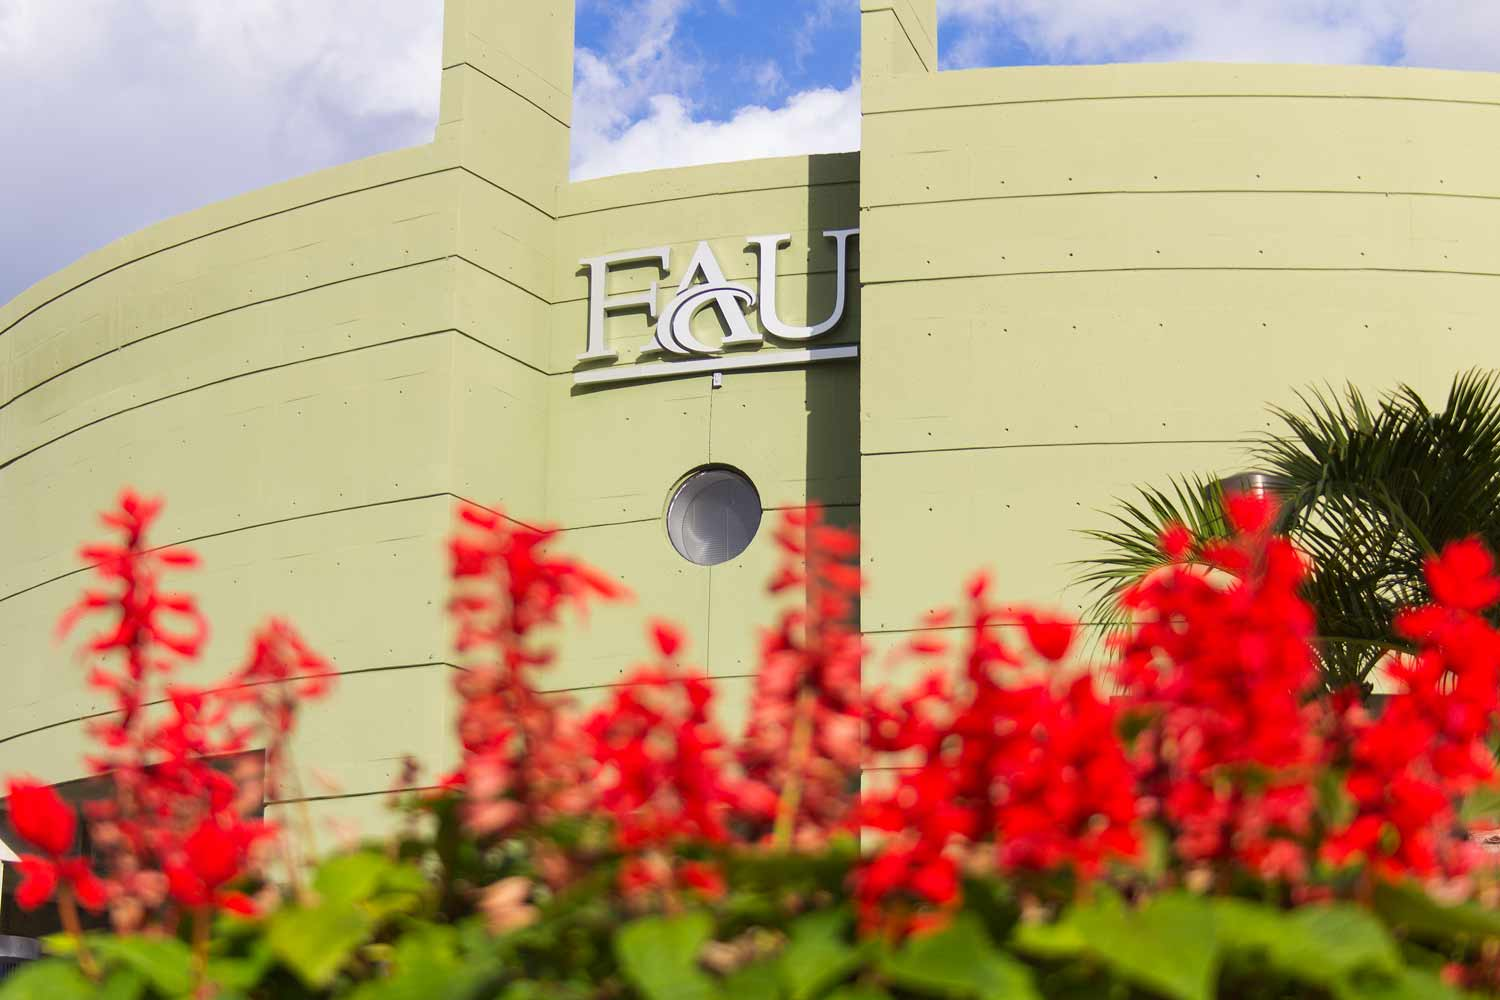 FAU ranked 29th out of 296 U.S. universities. The only other Florida public university that came close to its ranking was the University of Central Florida, coming in 66th place. Photo by Jessica Wilkerson